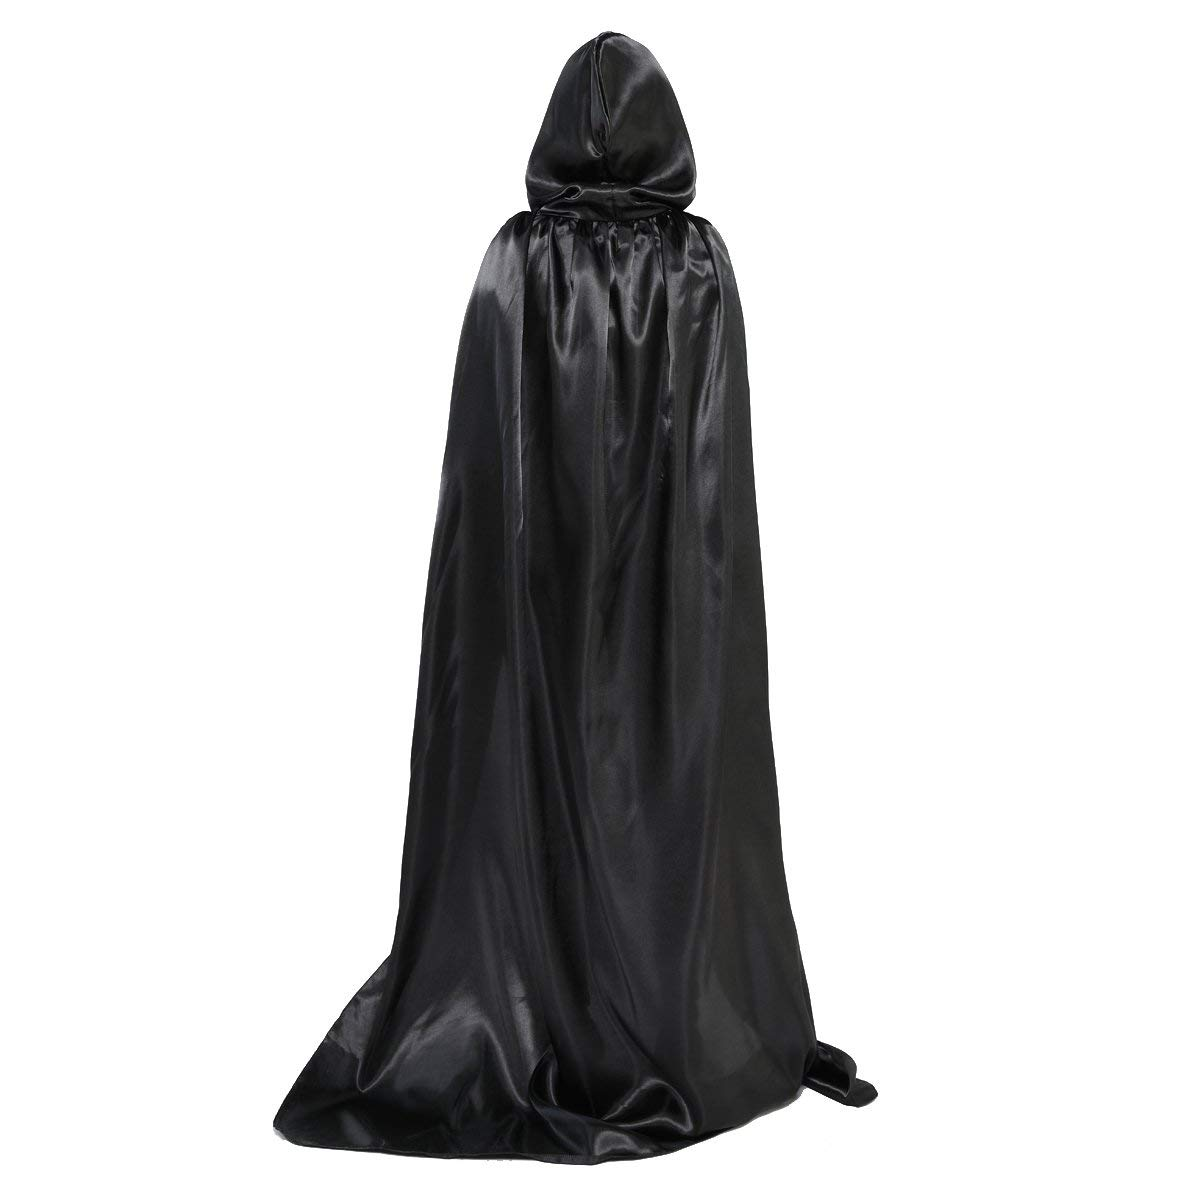 OLABB Unisex Hooded Cape Cloak Party Costumes for Halloween Christmas Cosplay Fancy Dress Costume Black by OLABB